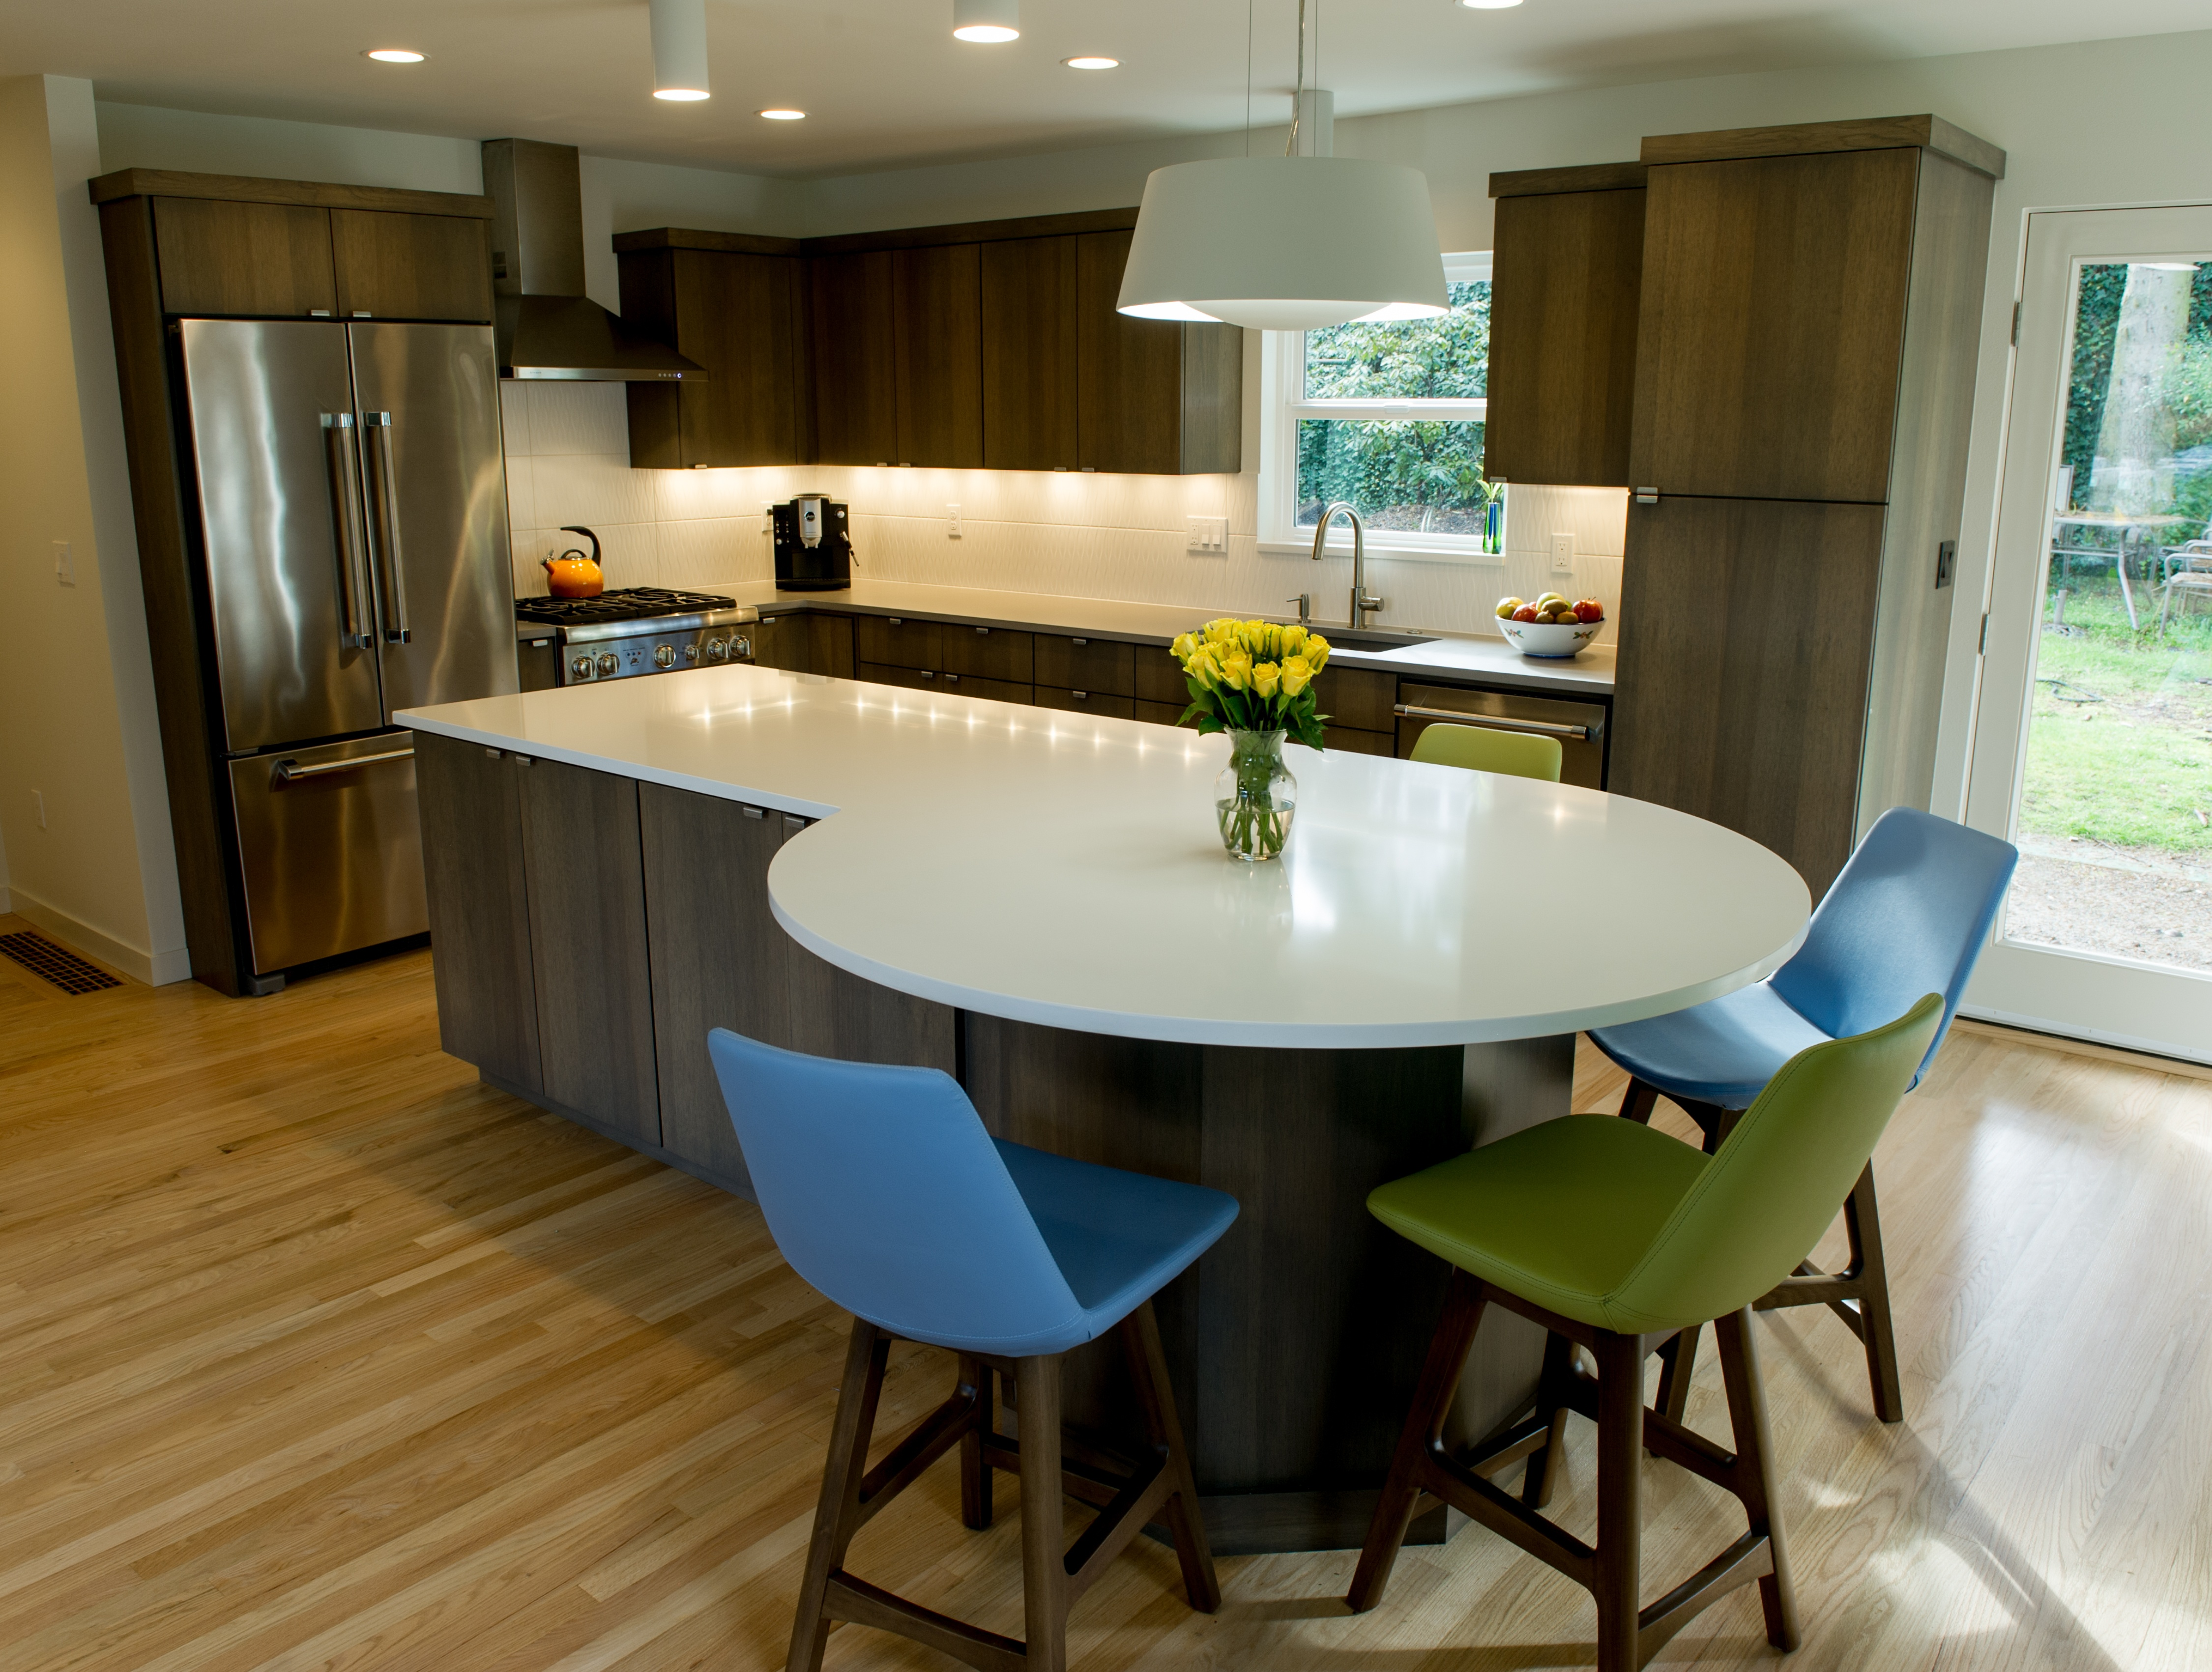 Round Kitchen Island - Portland Remodeling Company.jpg